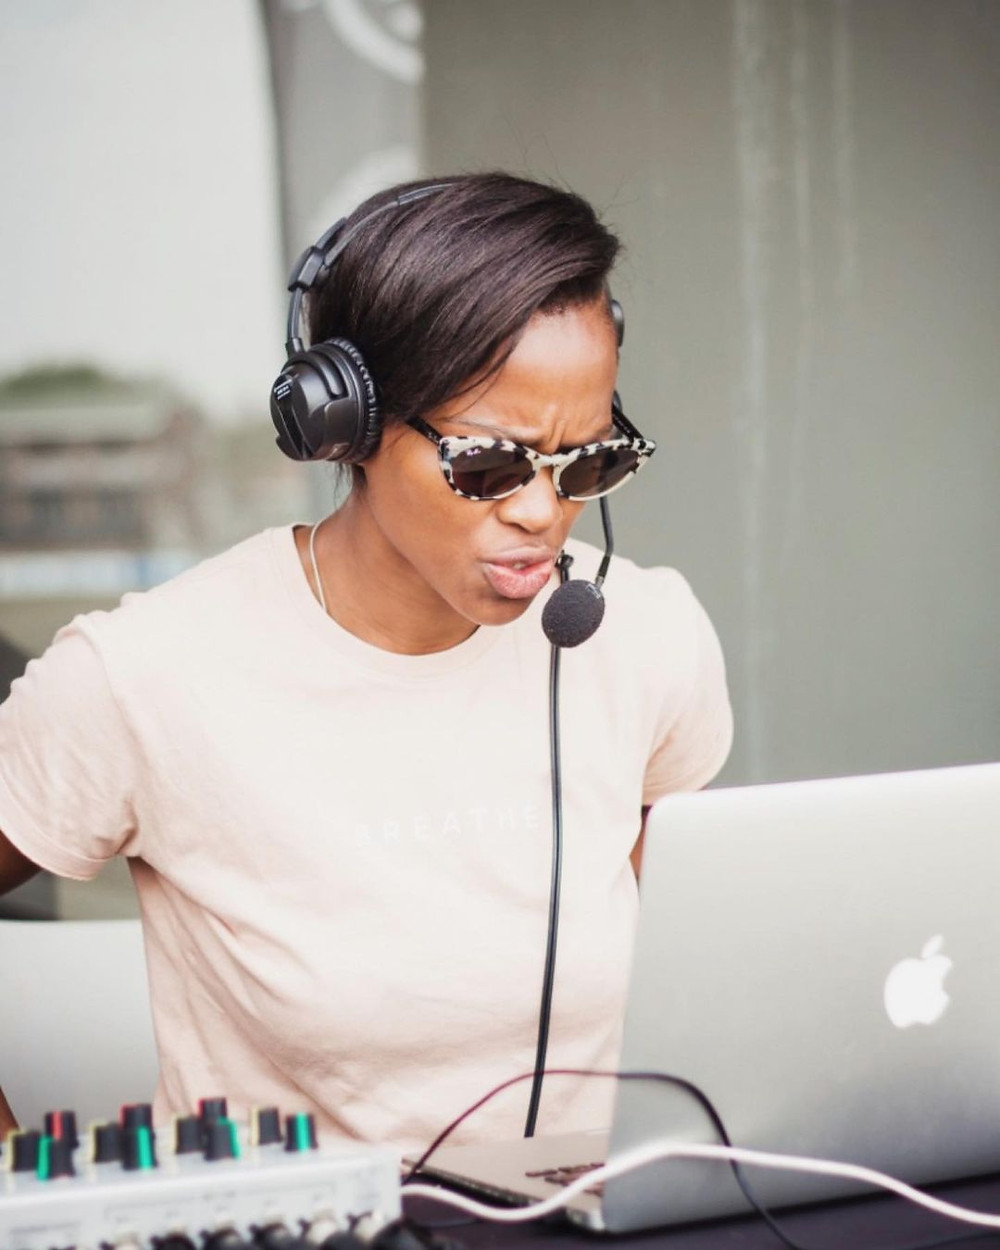 """Rob Forbes and DJ Fikile """"Fix"""" Moeti announced their resignation from SABC's 5FM on Twitter. The-Forbes-and-Fix-Show was the longest-running duo show on 5FM"""